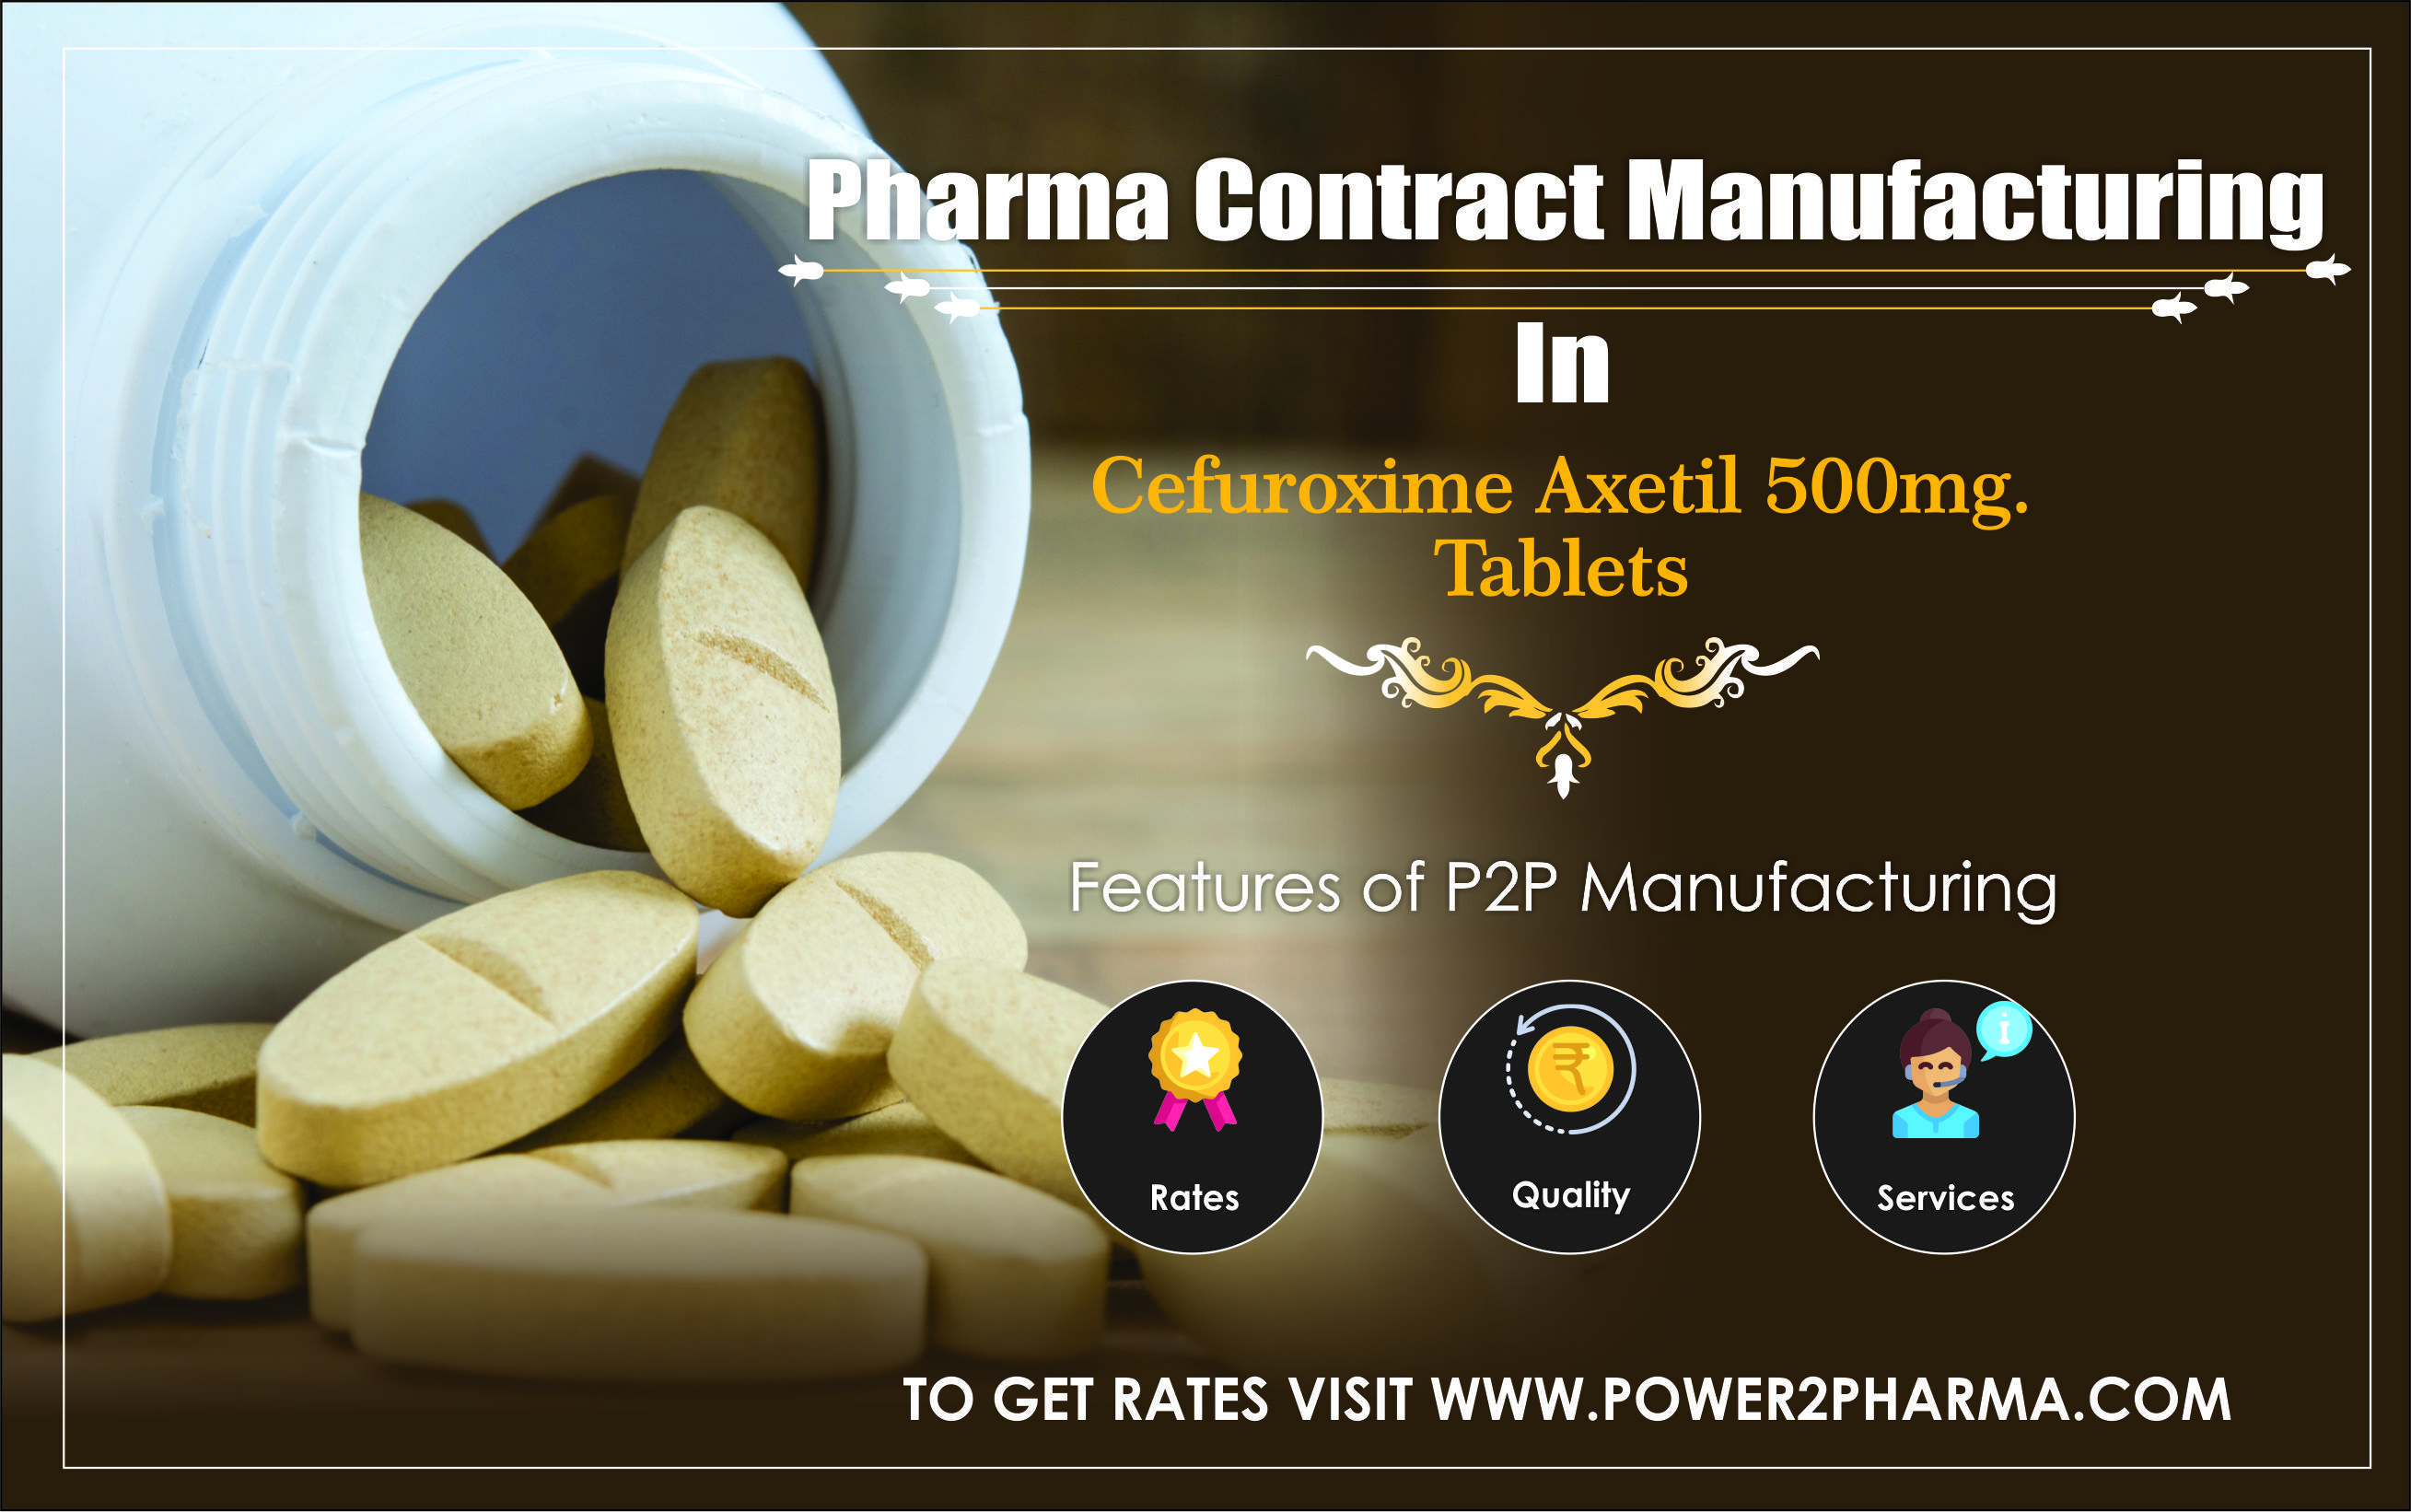 Pin on Pharma Contract Manufacturing